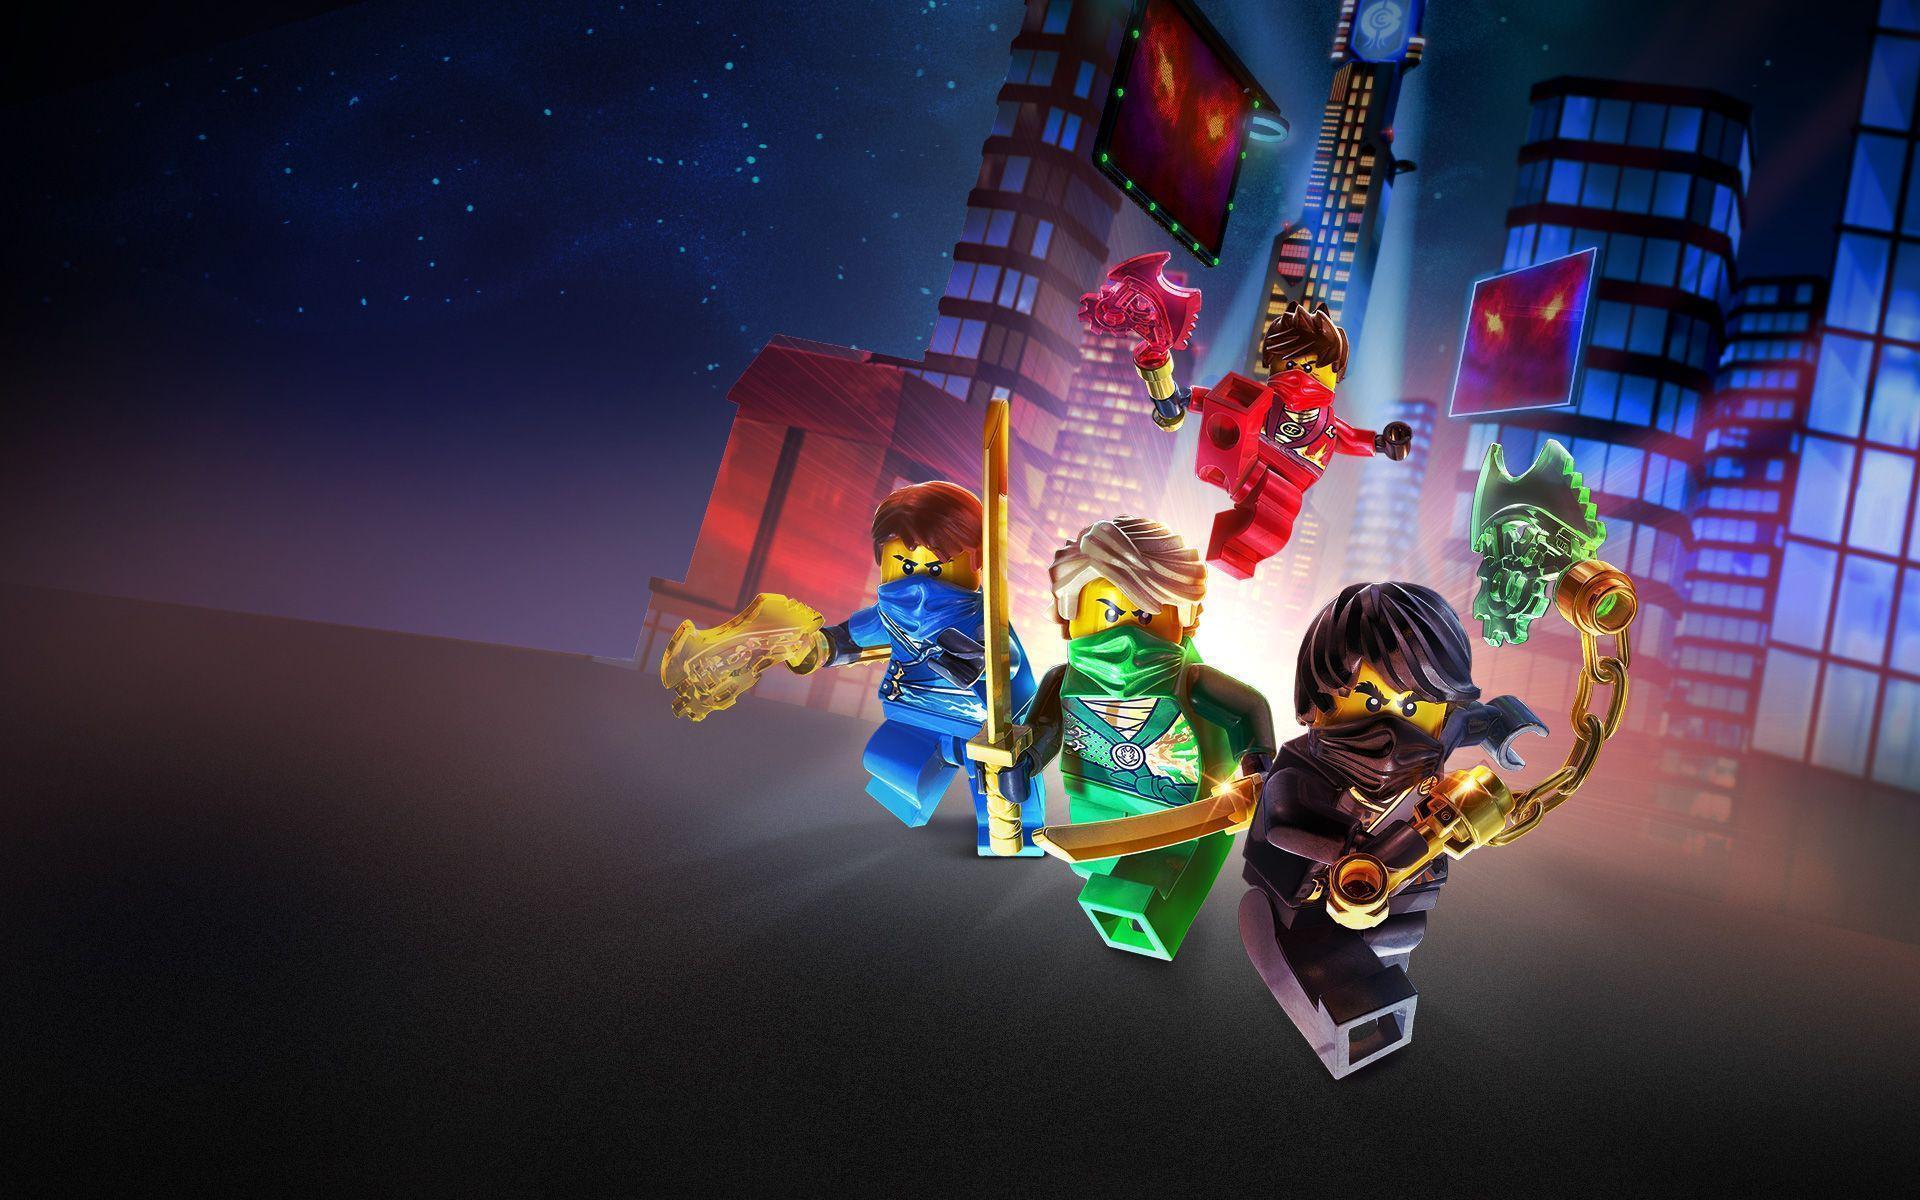 lego ninjago wallpaper high - photo #17